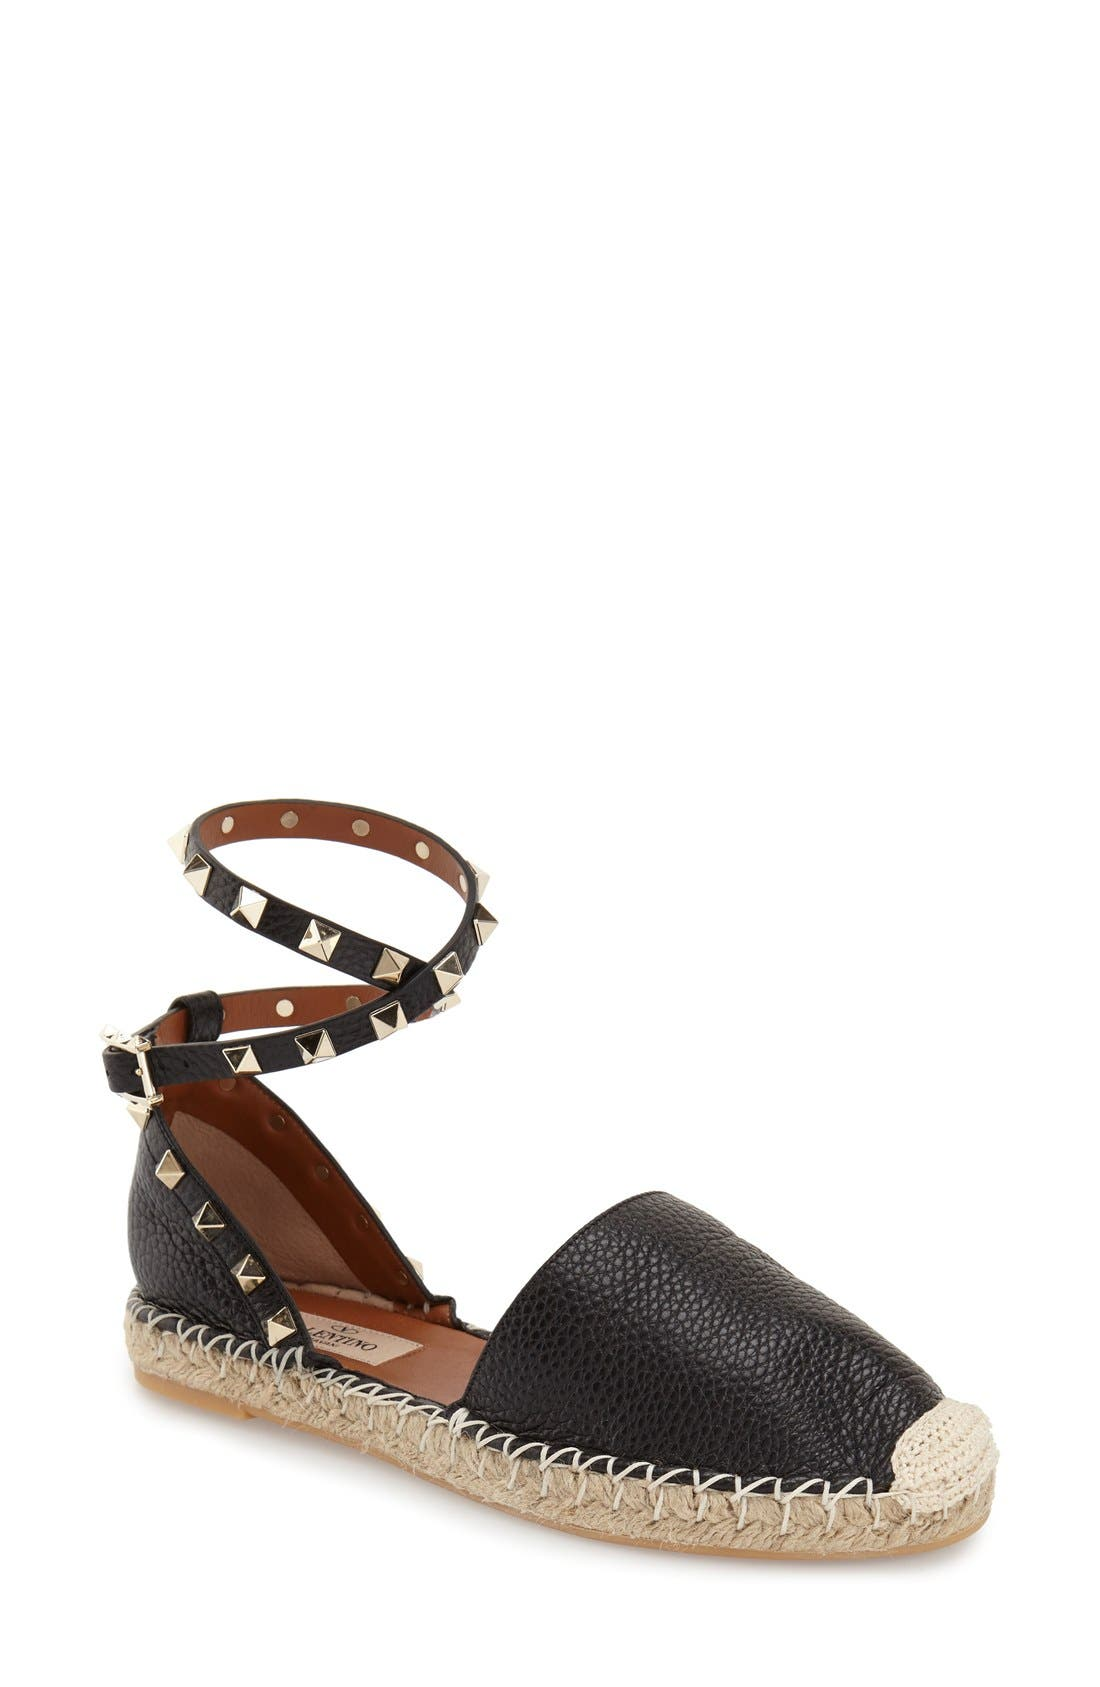 Alternate Image 1 Selected - Valentino 'Rockstud' Ankle Strap Espadrille (Women)